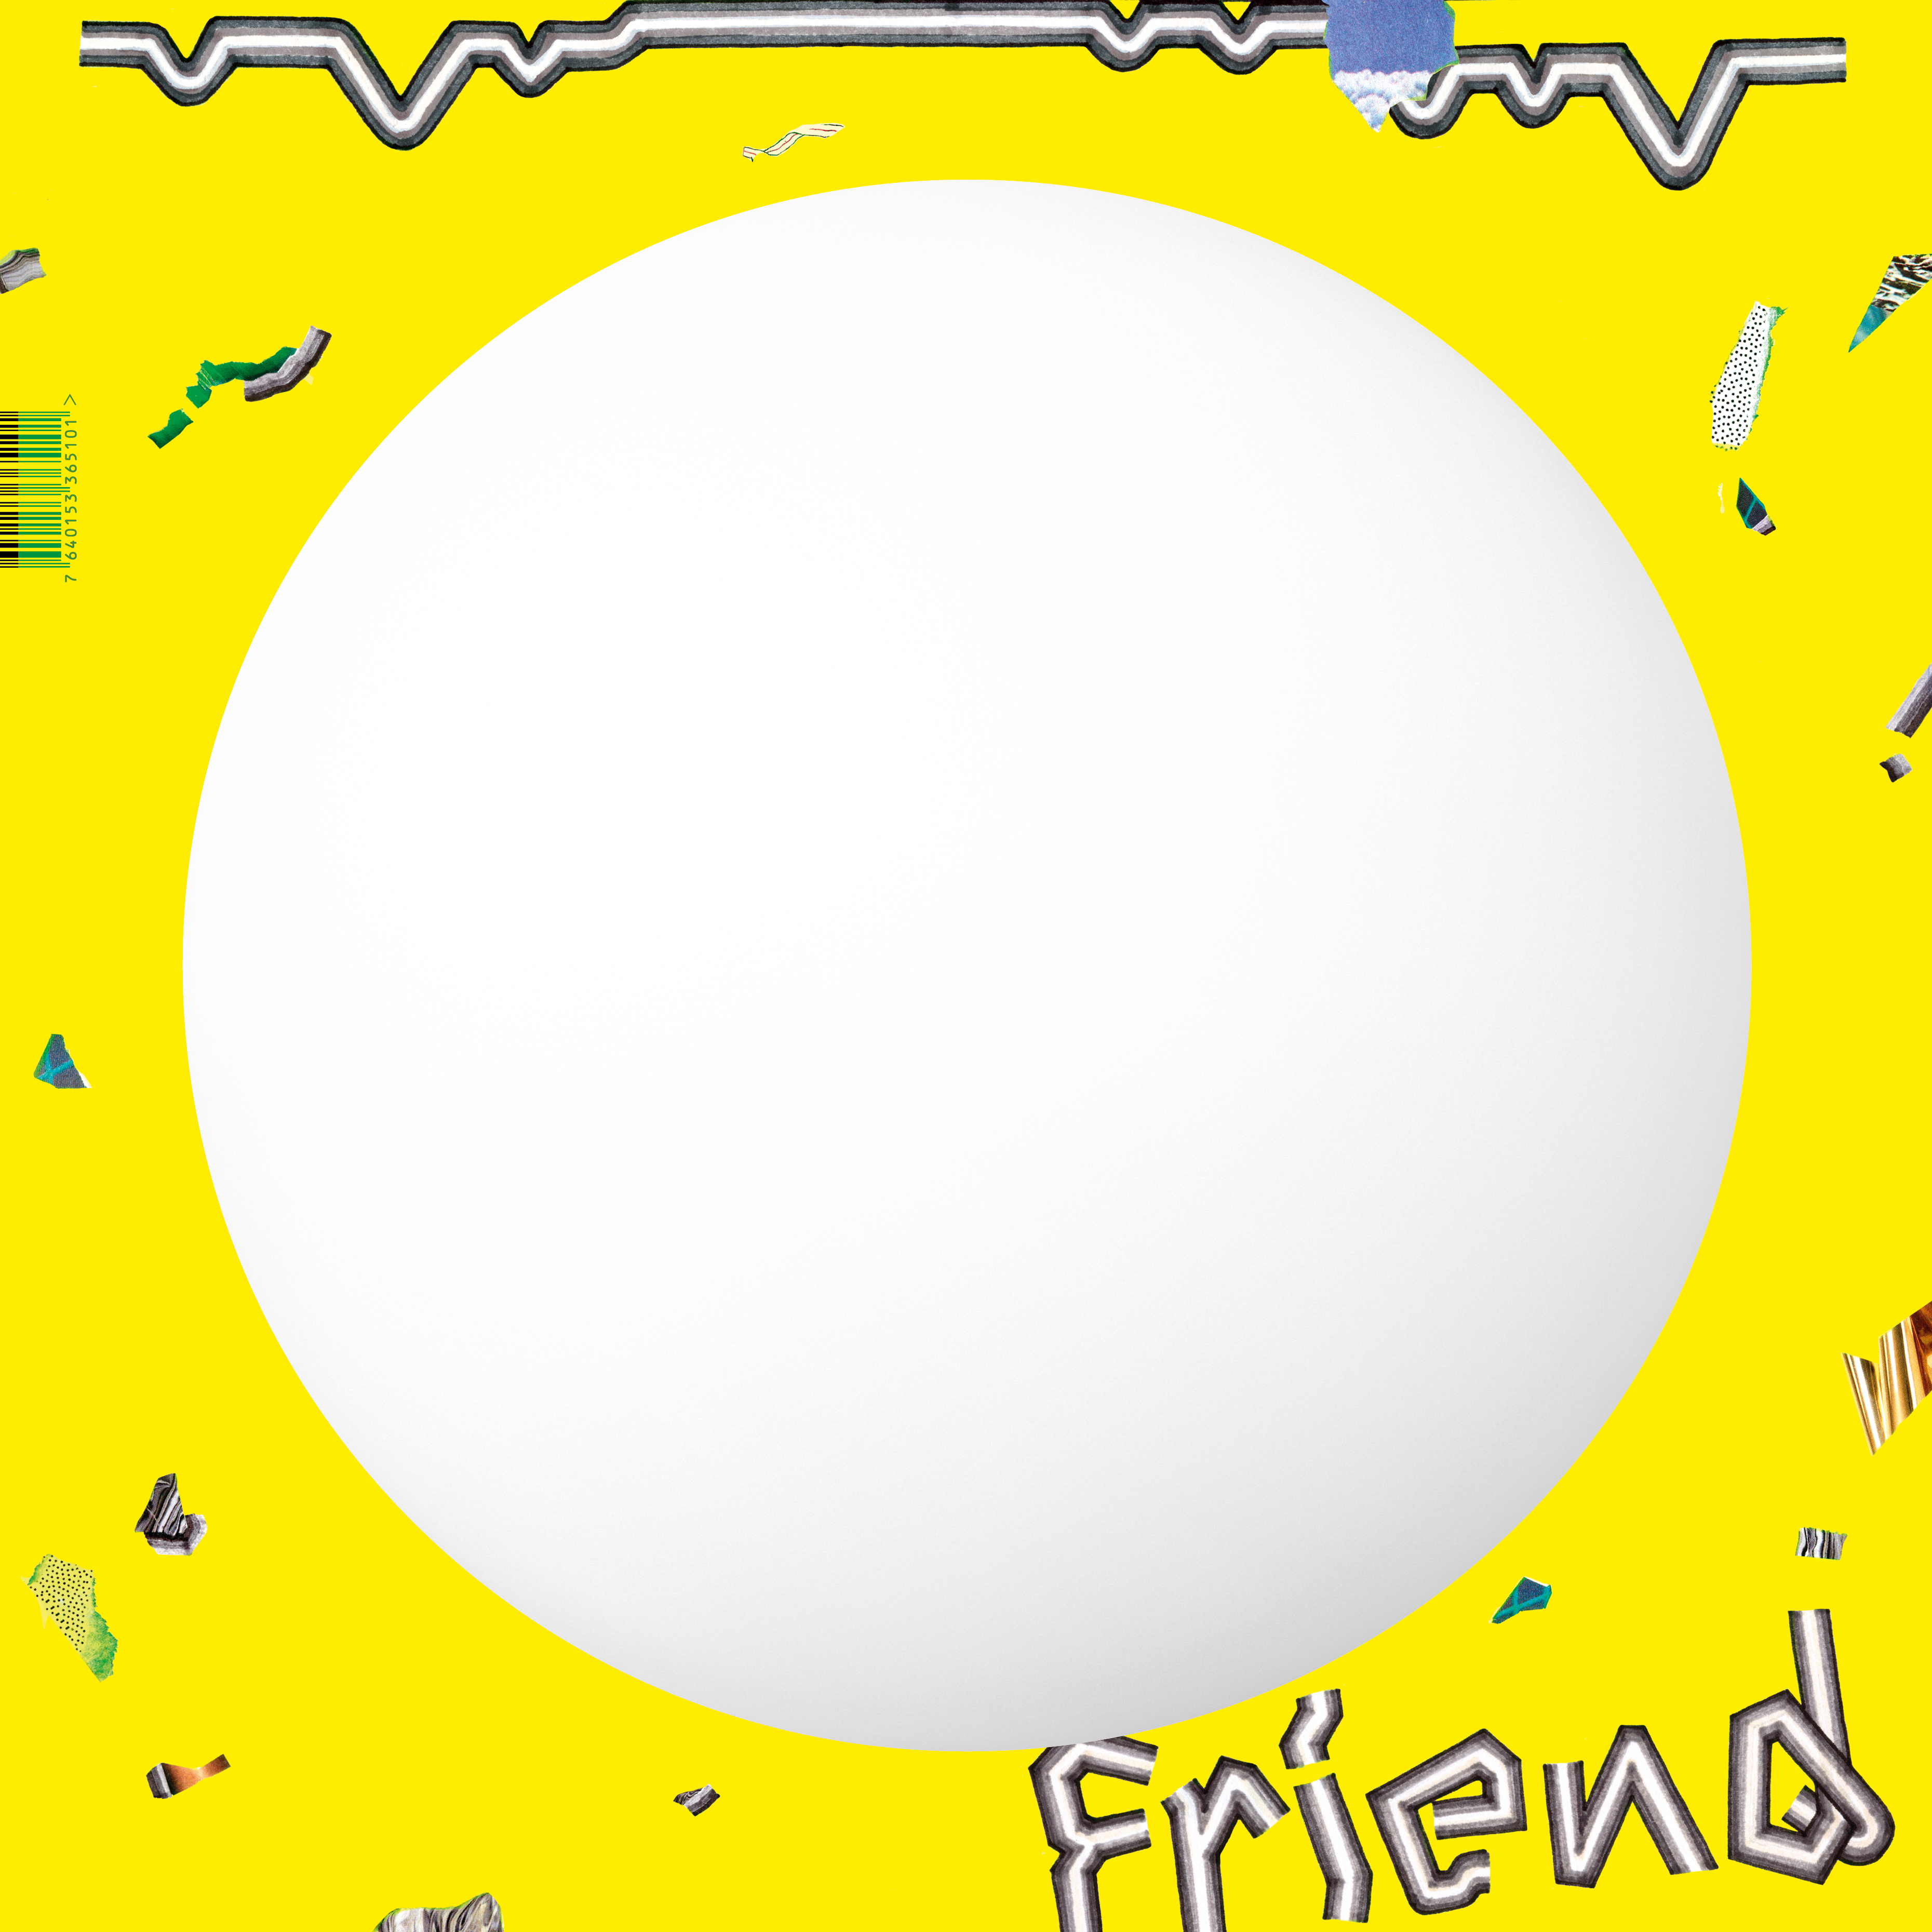 Friend – In the Teeth of the Wind